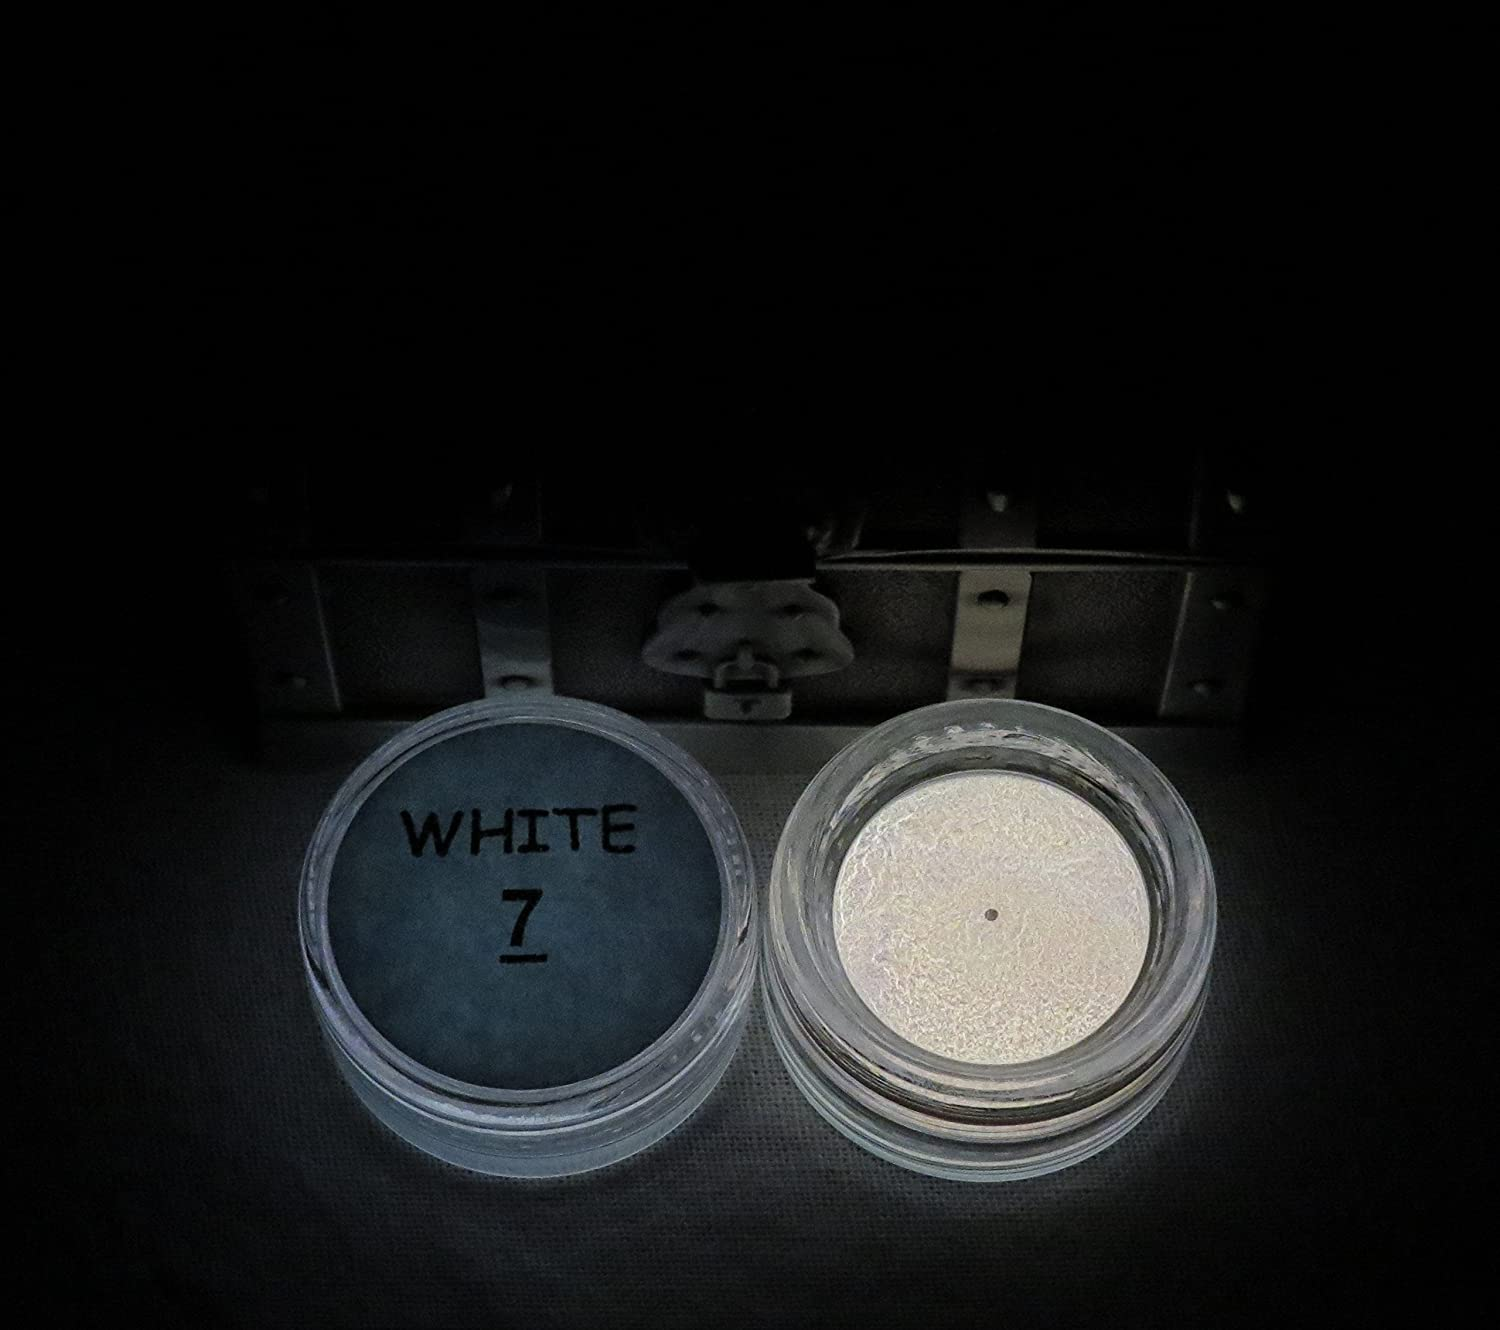 PRESTIGE GLOW IN THE DARK Pigment Powder. Longest Lasting Glow in The Dark Powder. Recommended for All COLORLESS Medium. Ink. Paint. Plastic Resin. Glass. ETC. (1/2 Ounce, White)